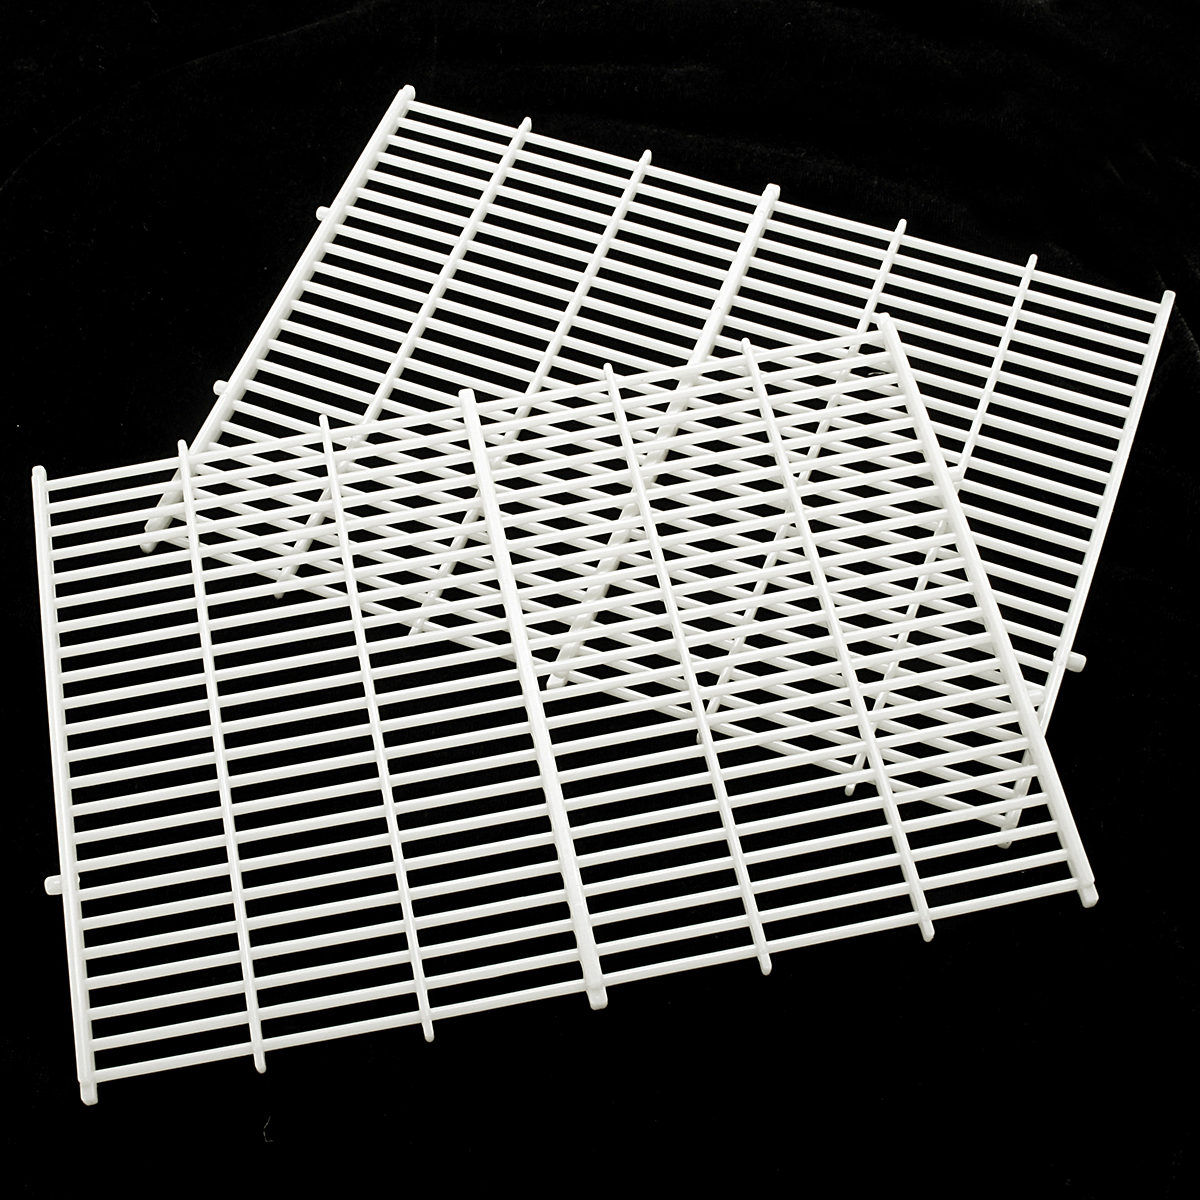 2Pcs Beekeeping Bee Queen Excluder Trapping Grid Net Tool Equipment Apiculture